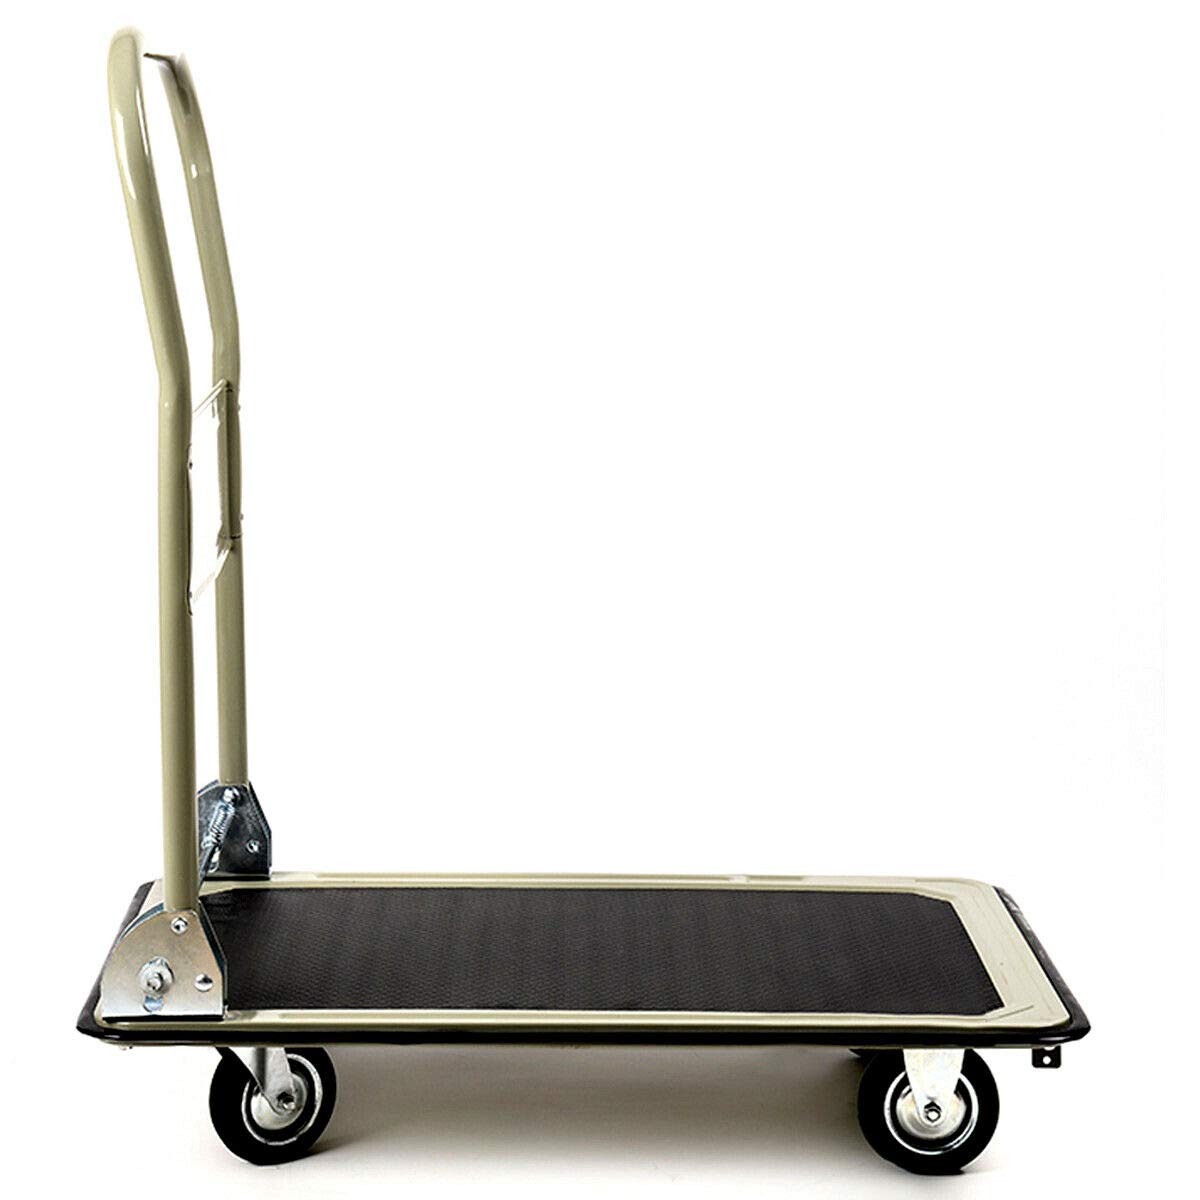 Gray 330lbs Platform Cart Folding Foldable Dolly Push Hand Truck Moving Warehouse Transport Heavy Large Loads(U.S. Stock) by Heize best price (Image #7)